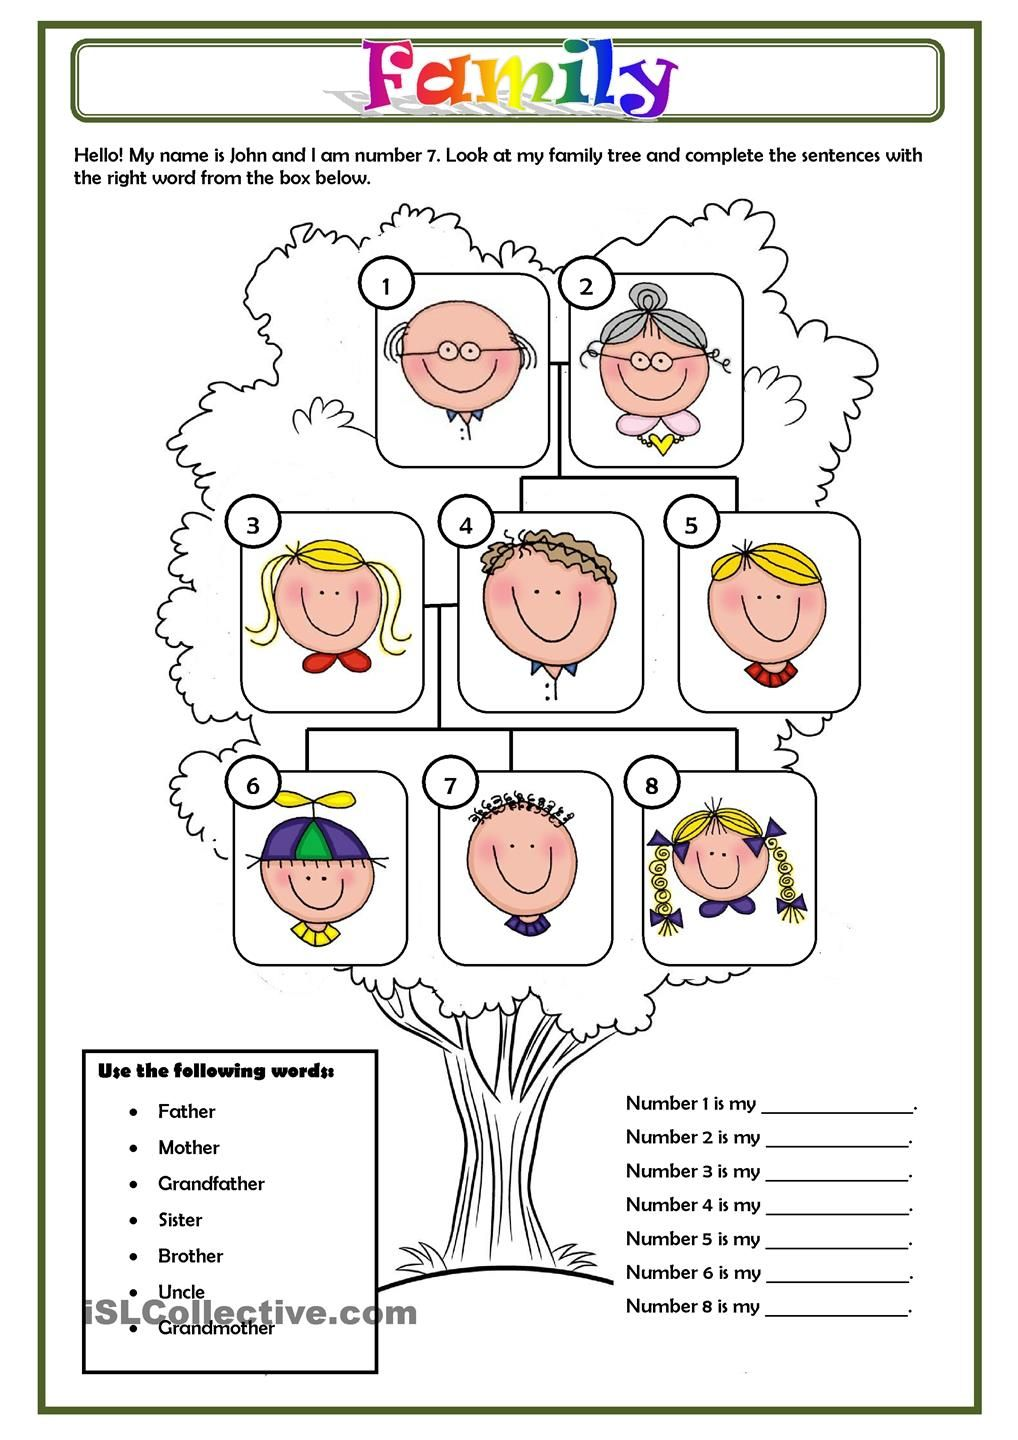 Worksheets Family Tree Worksheet Printable pin by johanna on enkku pinterest english family worksheet free esl printable worksheets made teachers mais